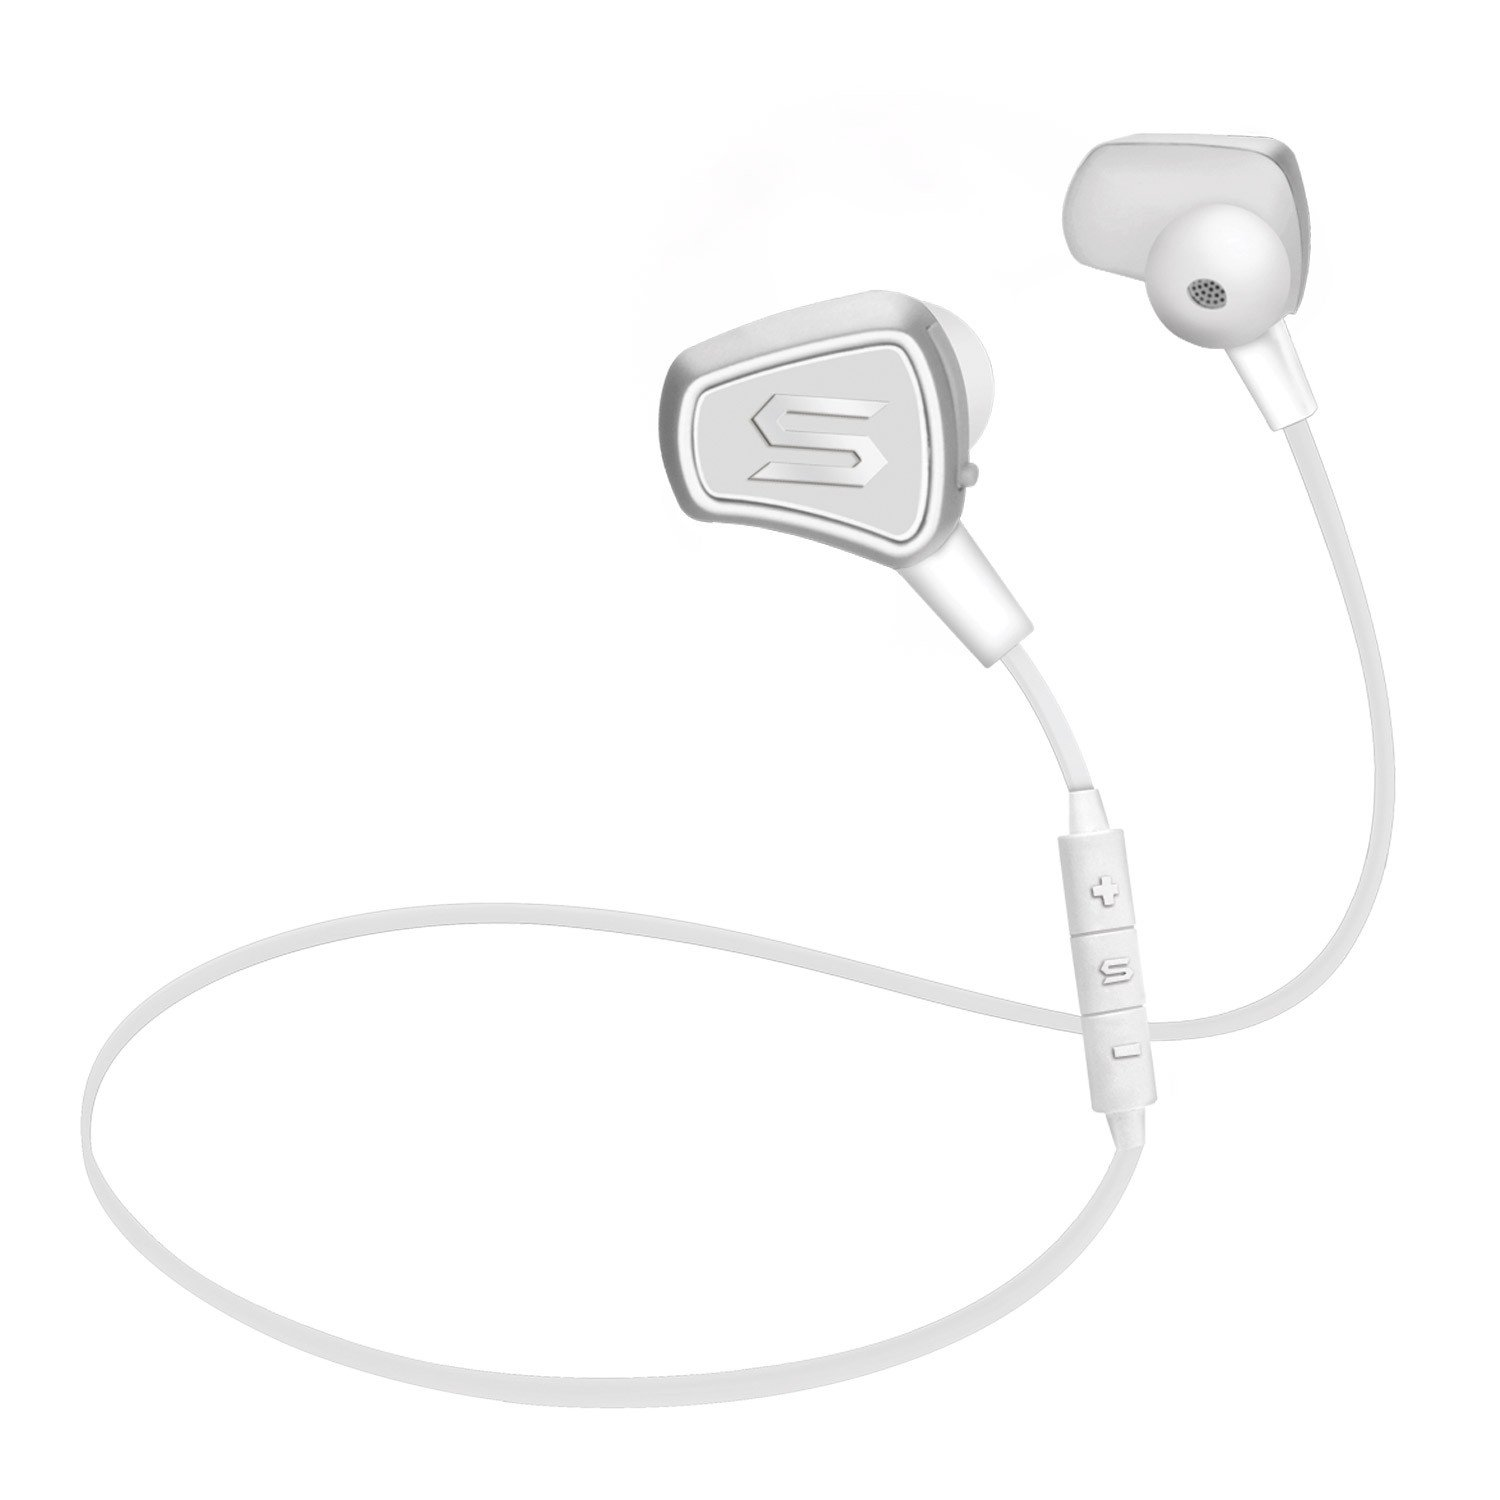 Impact wireless white - Soul Electronics - Ακουστικά